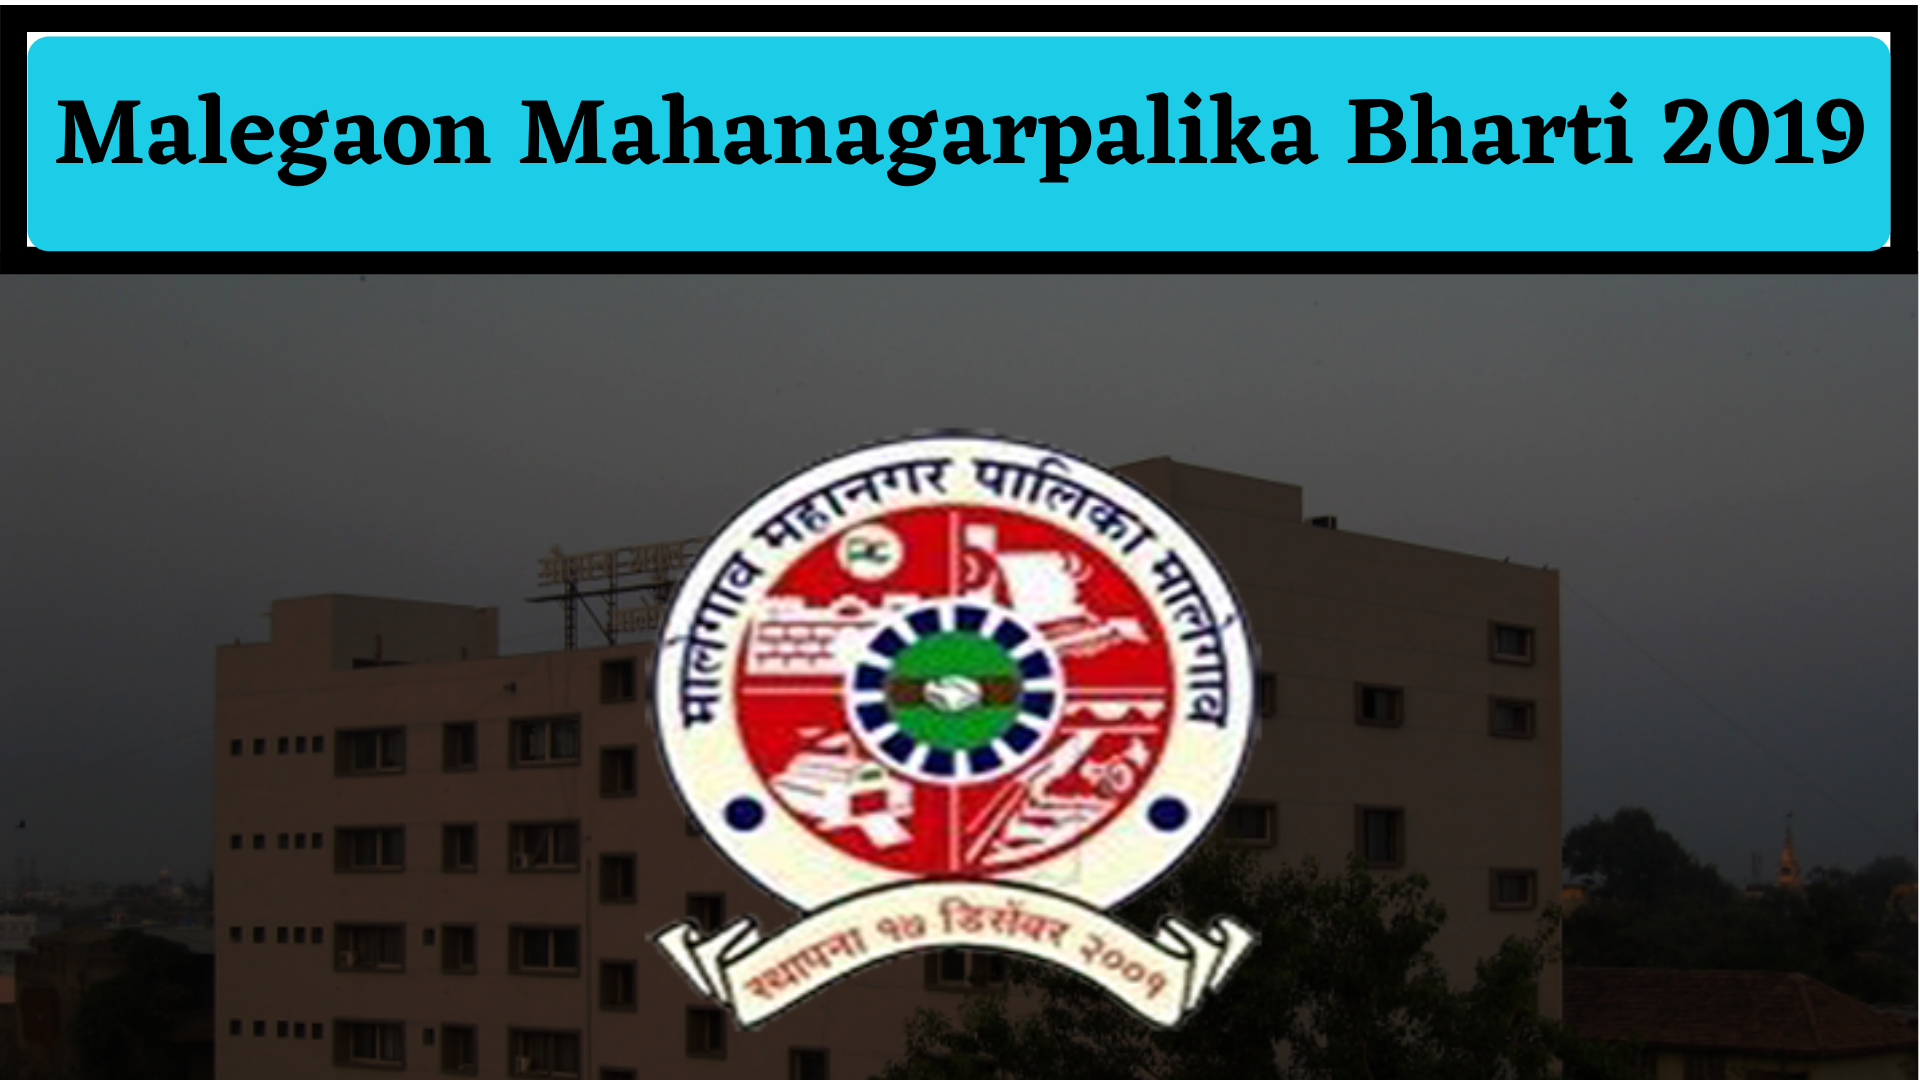 Malegaon Mahanagarpalika Recruitment 2019 : Malegaon Municipal Corporation, Malegaon is going to conduct walk – in interview for recruitment to the eligible ...